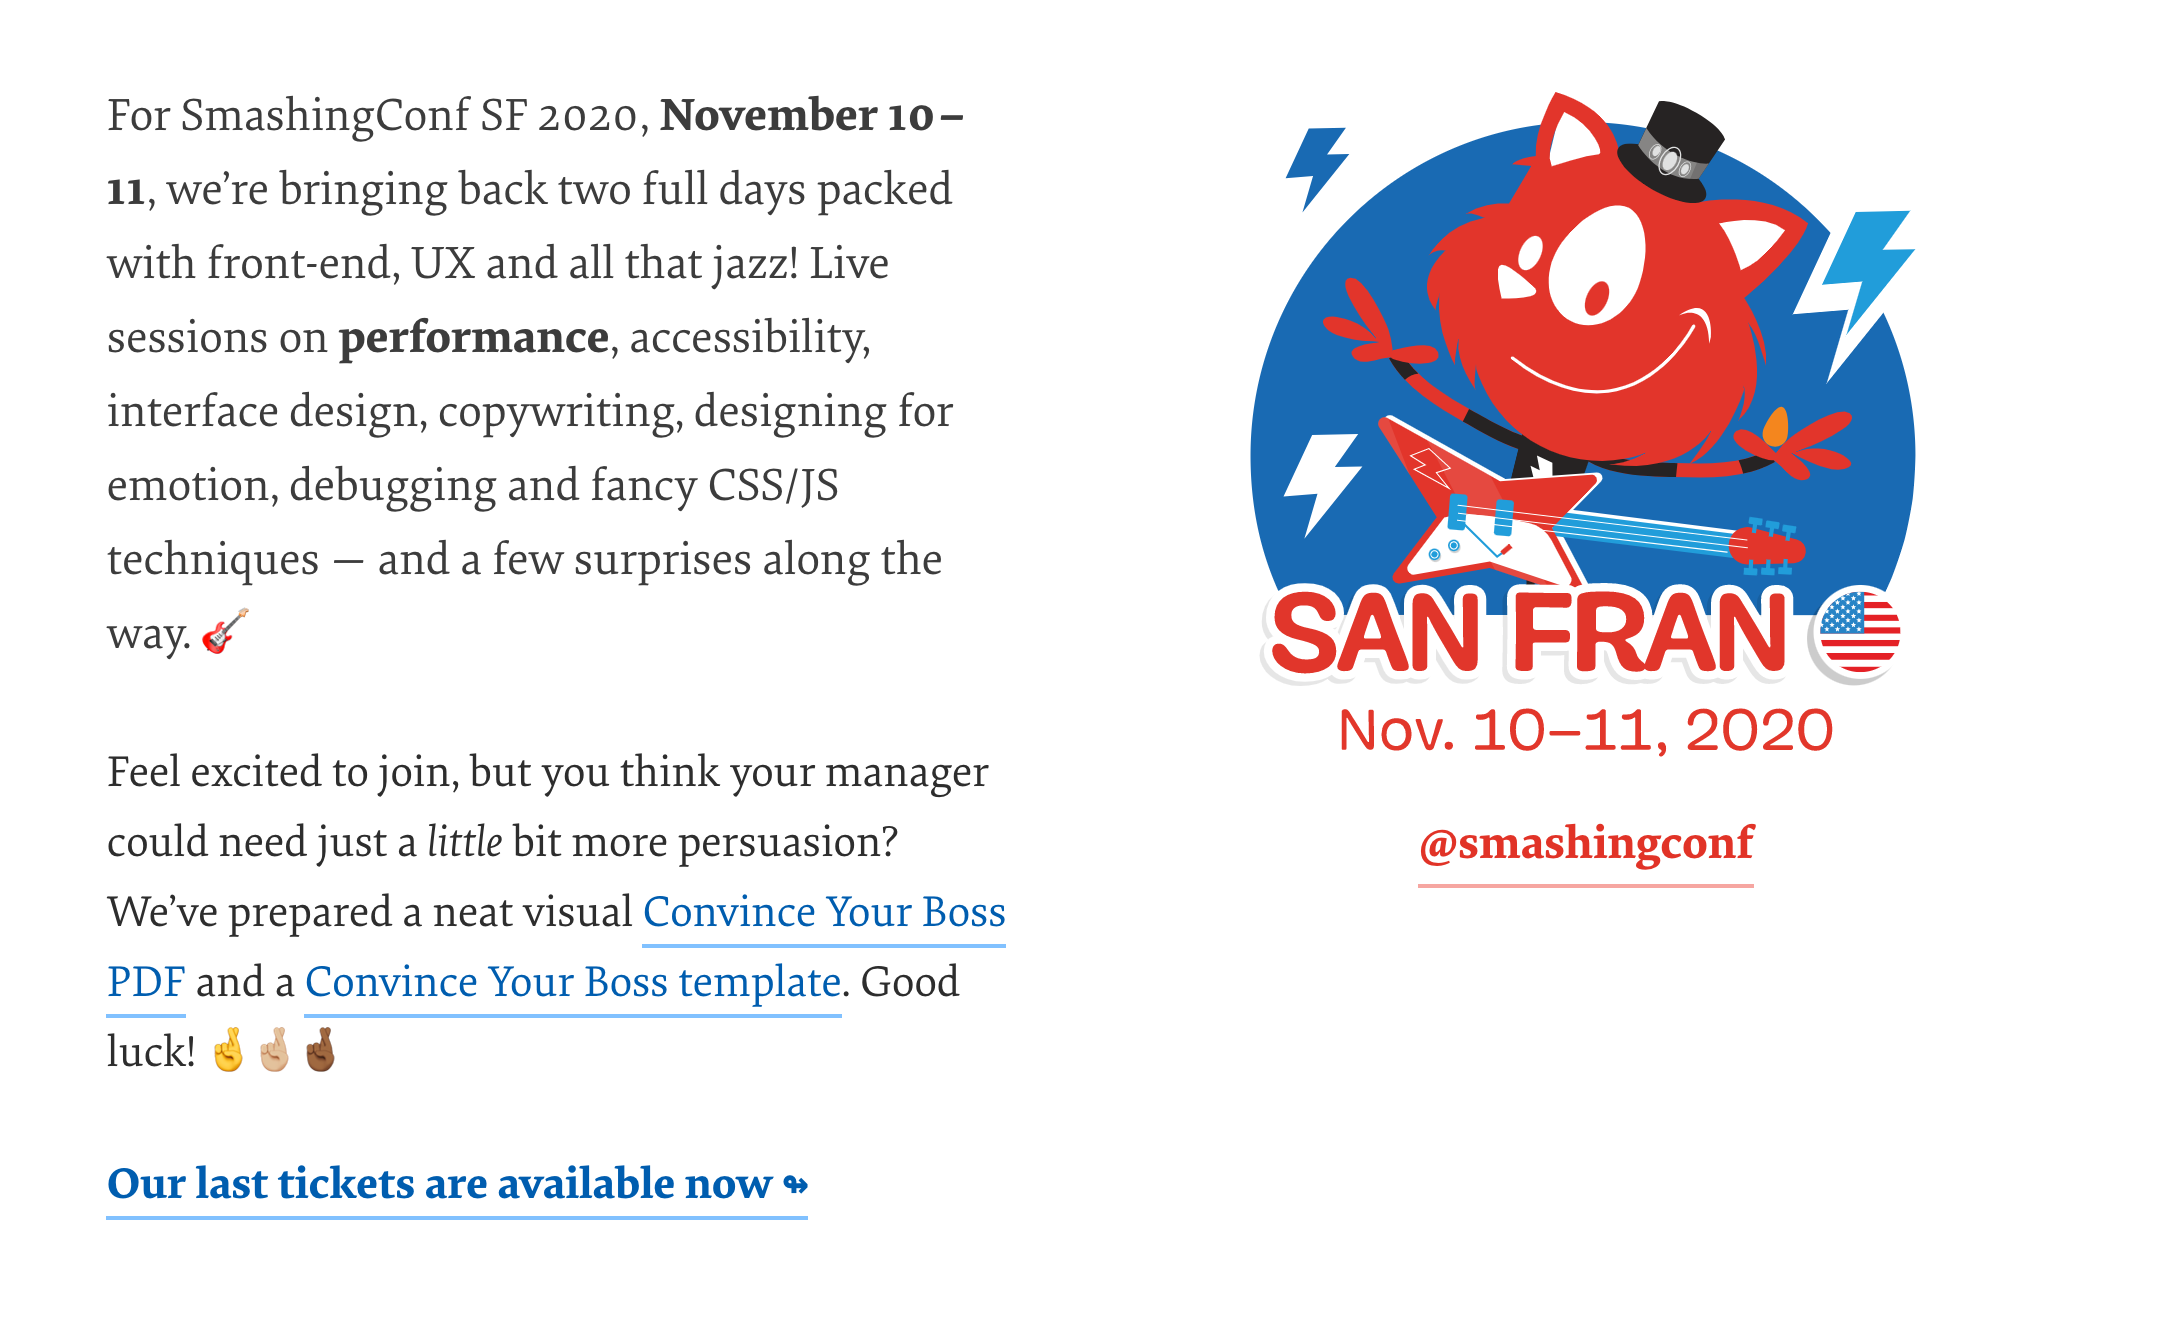 smashingconf